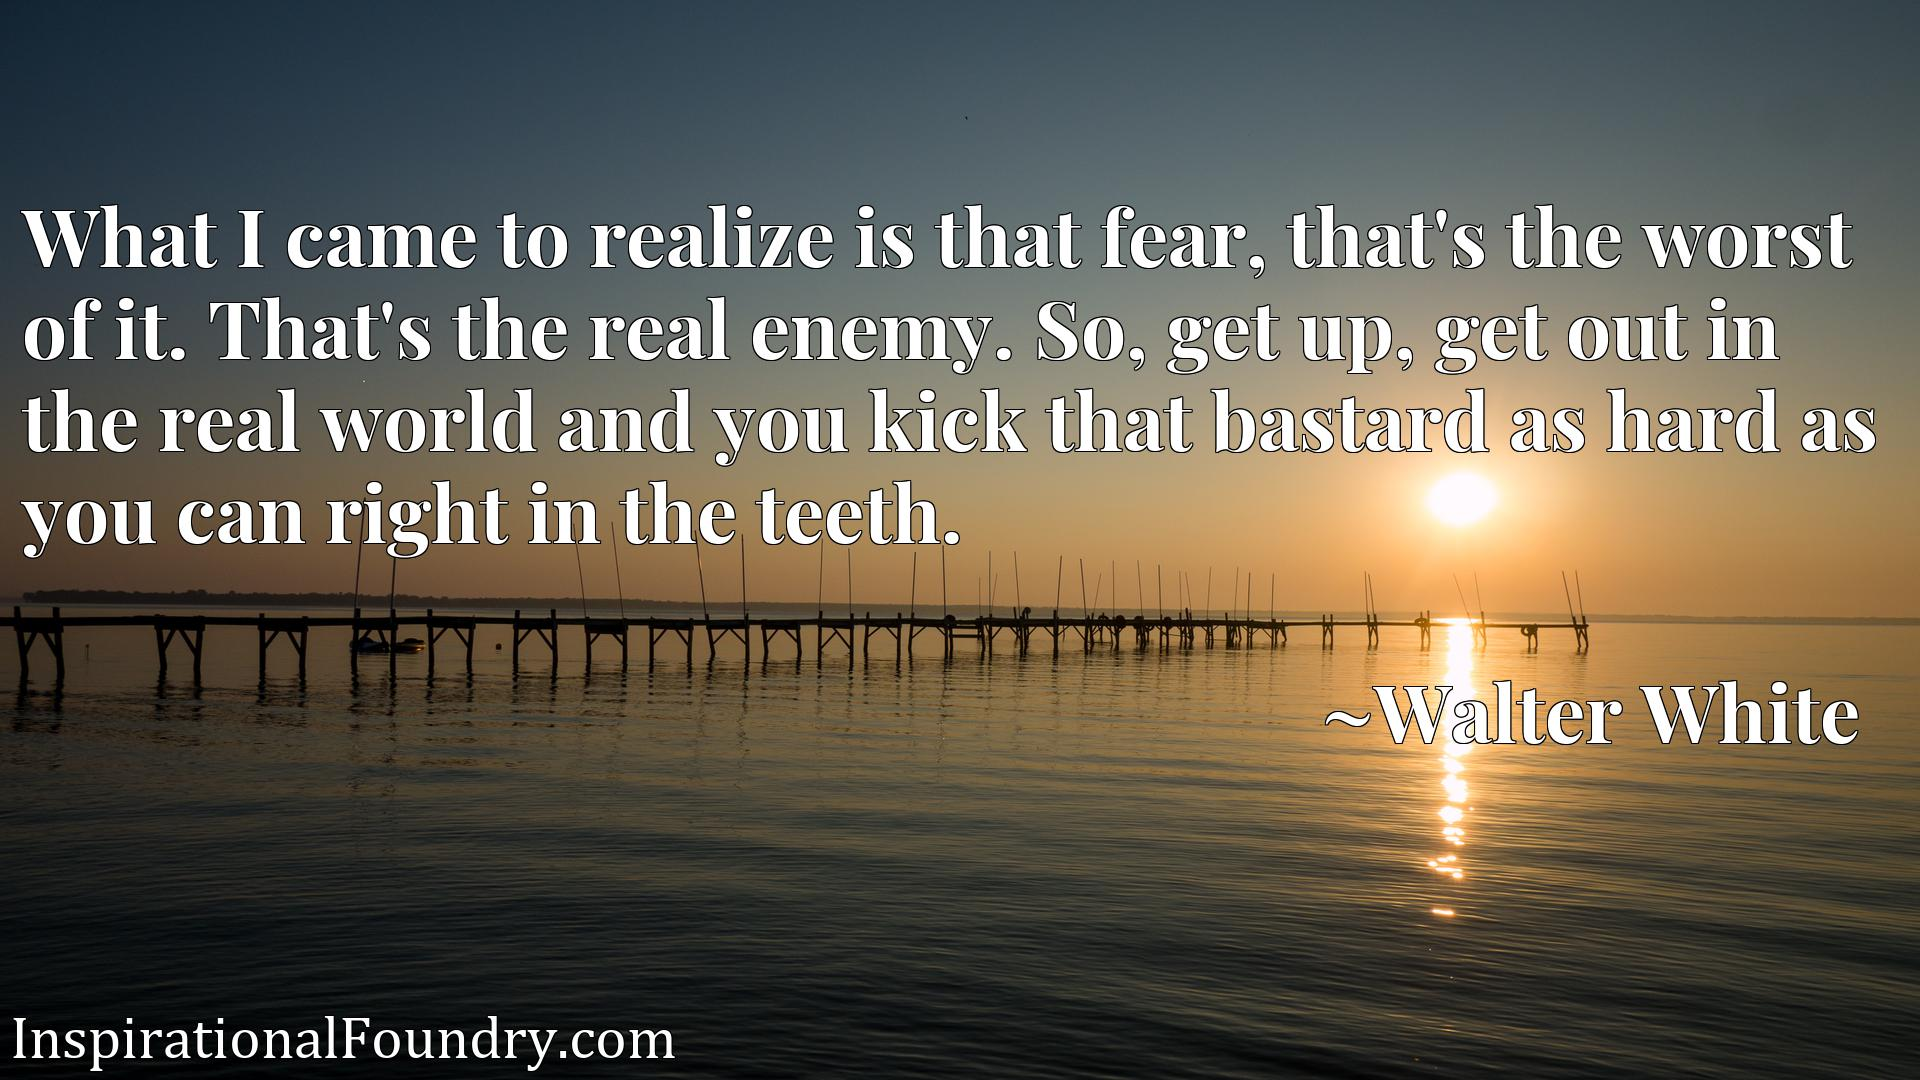 What I came to realize is that fear, that's the worst of it. That's the real enemy. So, get up, get out in the real world and you kick that bastard as hard as you can right in the teeth.